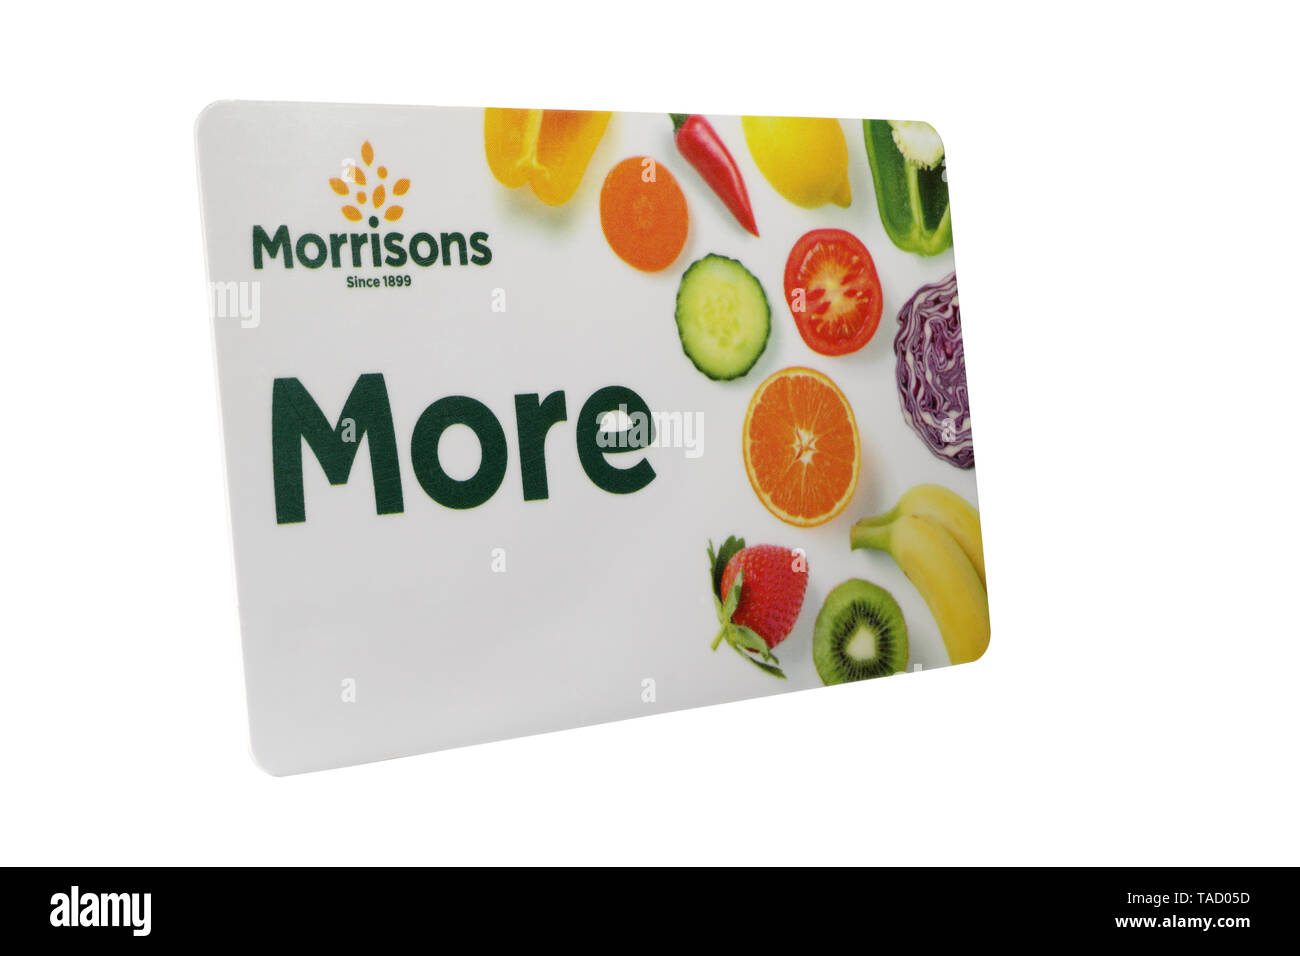 Morrisons More Loyalty Card with personal details removed isolated on a white background - Stock Image